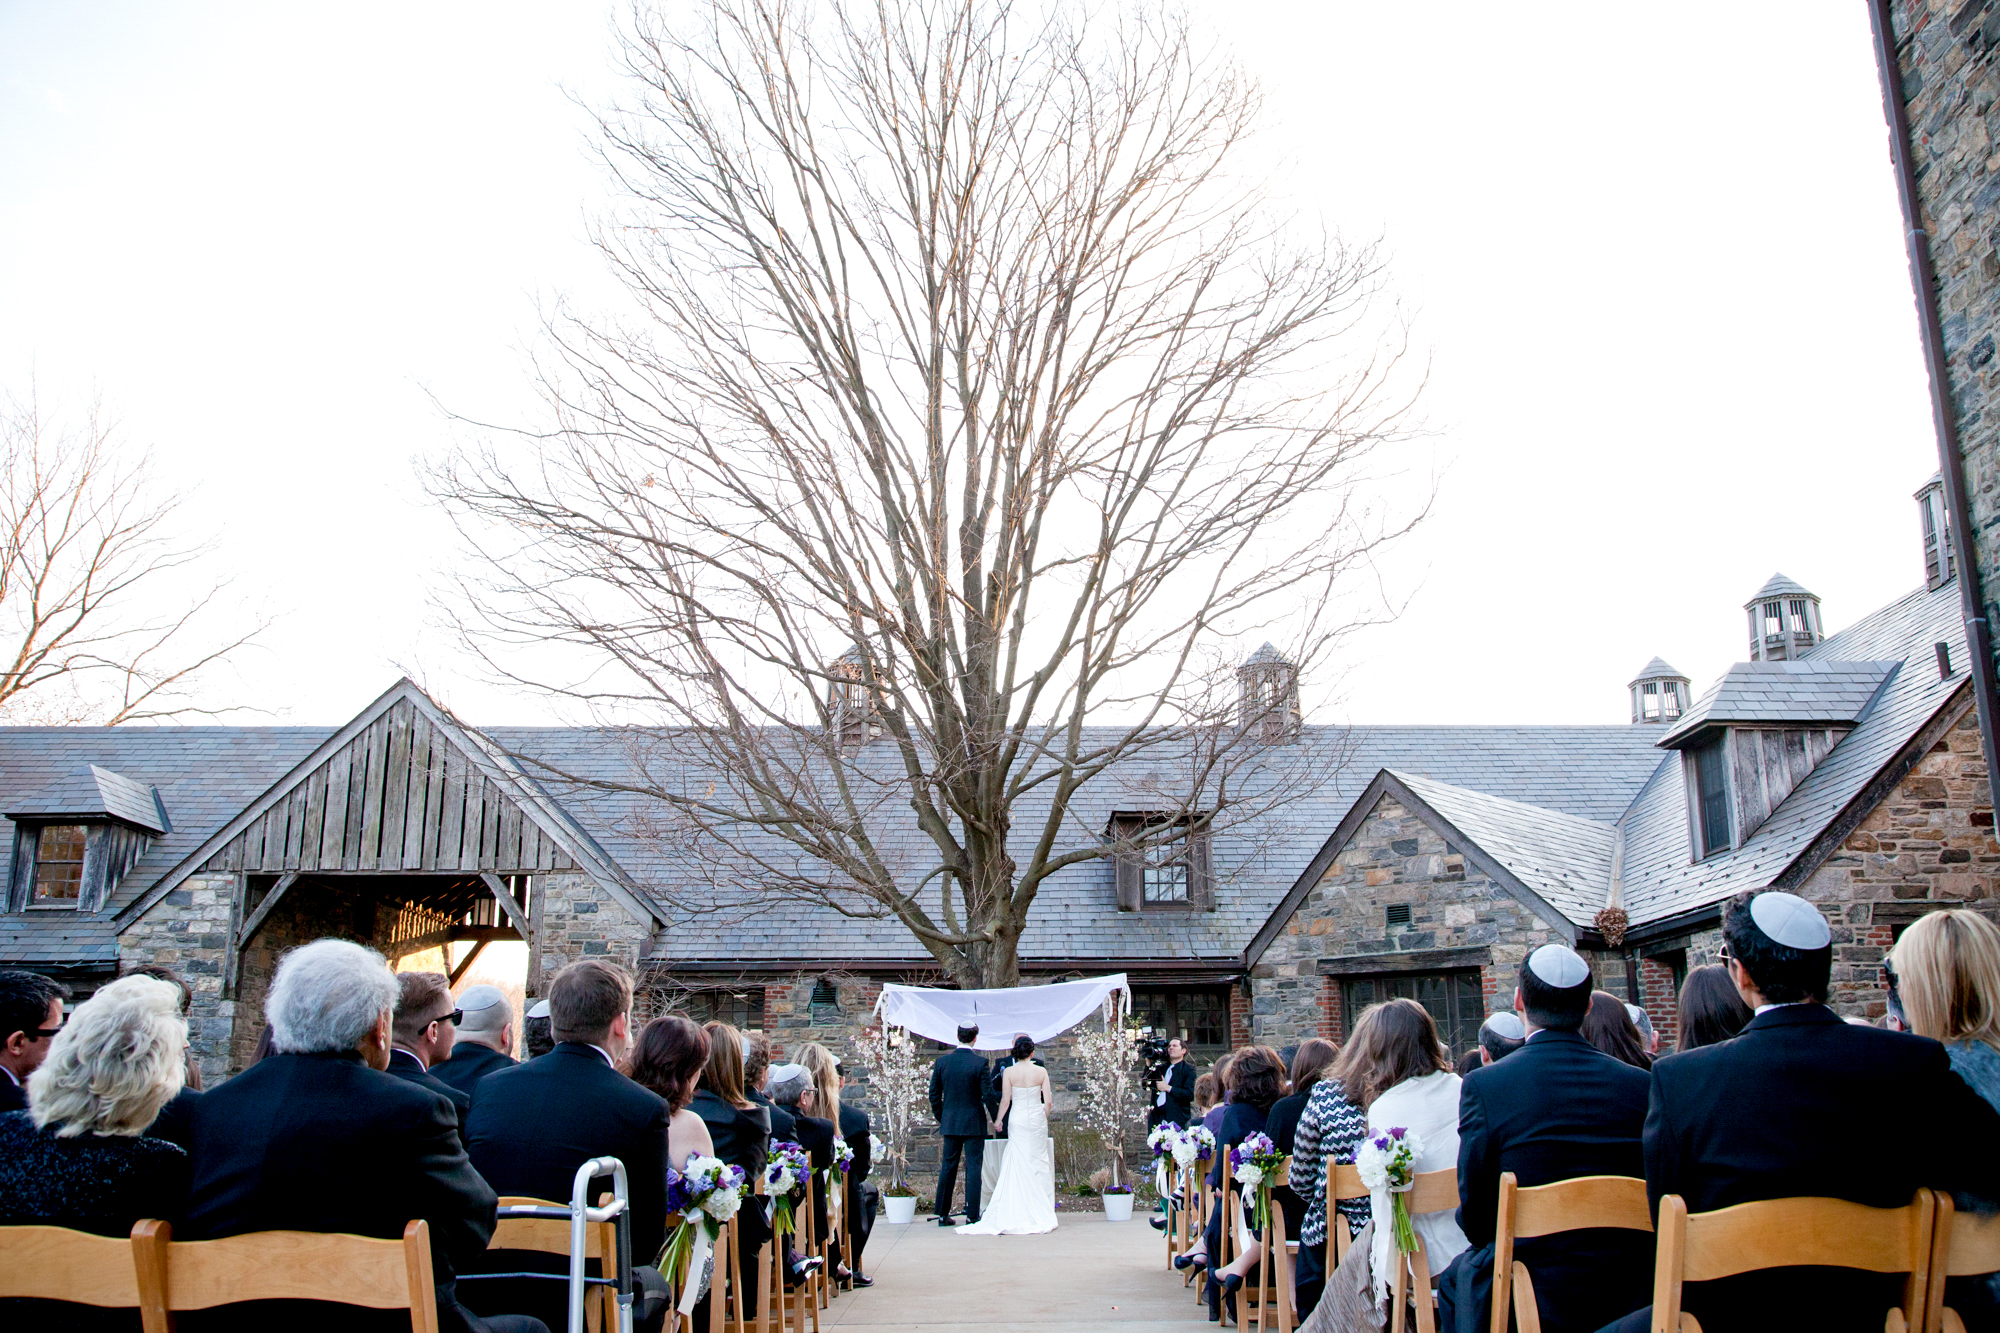 138_CarlyGaebe_SteadfastStudio_WeddingPhotography_NewYork_Upstate_Tarrytown_BlueHillStoneBarns_Huppah_Jewish_Vows_Bride_Groom_Outdoors.jpg